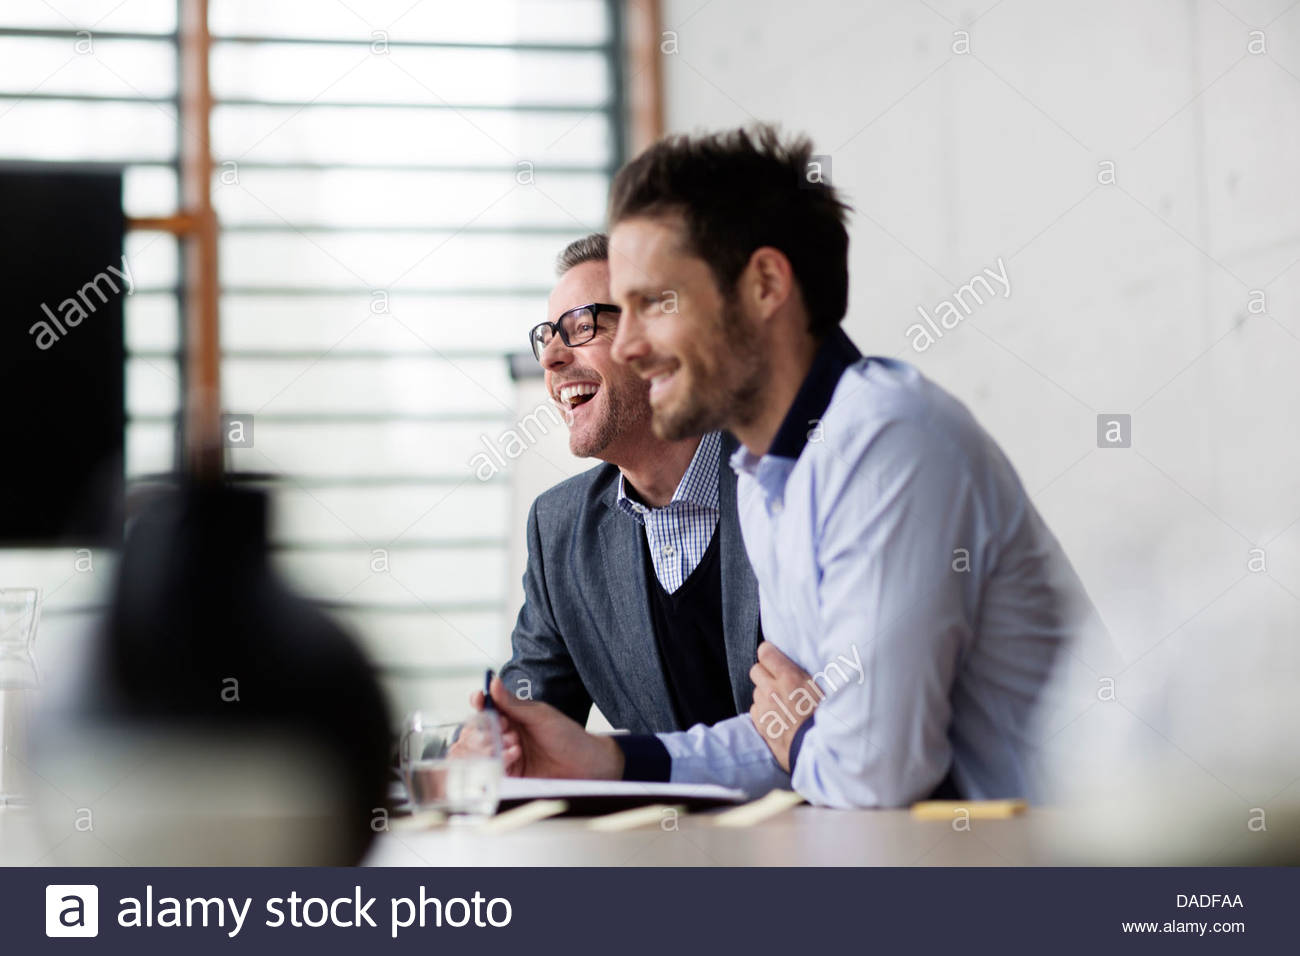 Two men laughing - Stock Image